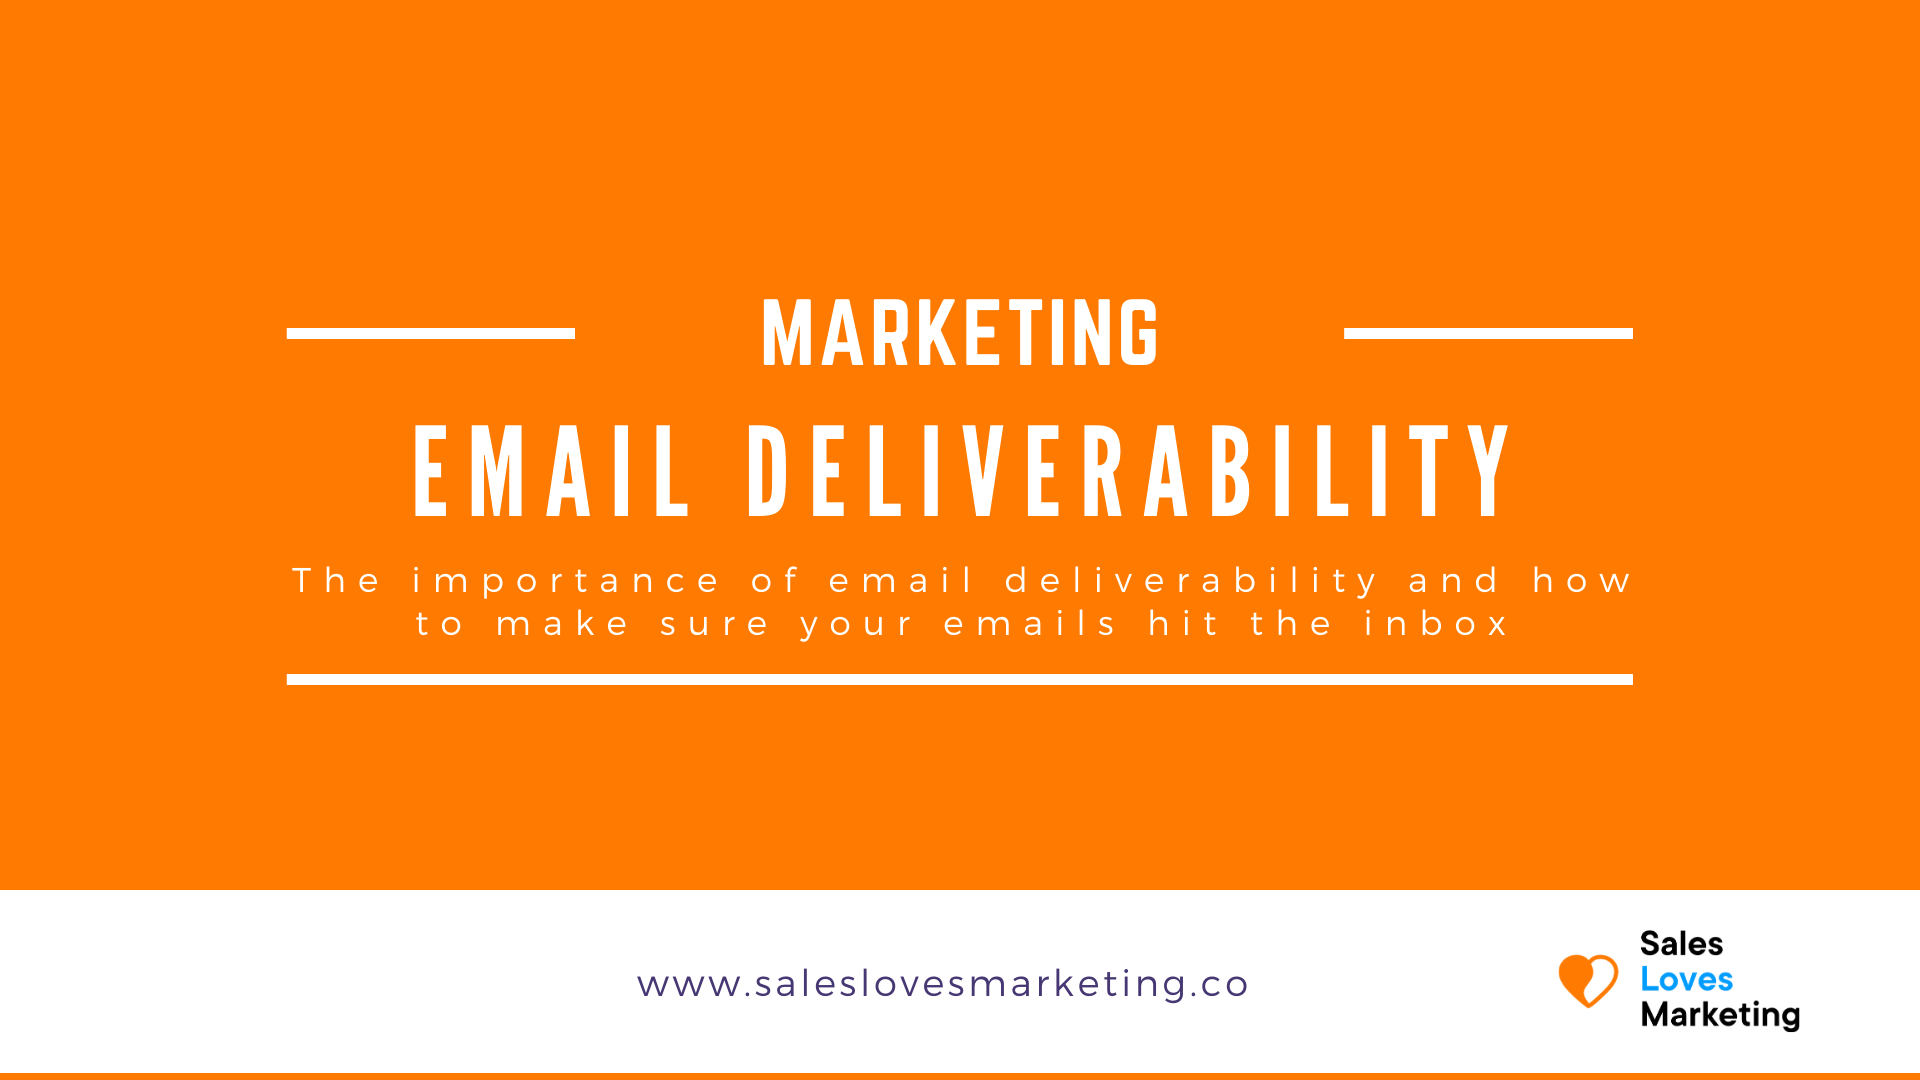 Why should you care about email deliverability and how to make sure your emails keep hitting the inbox